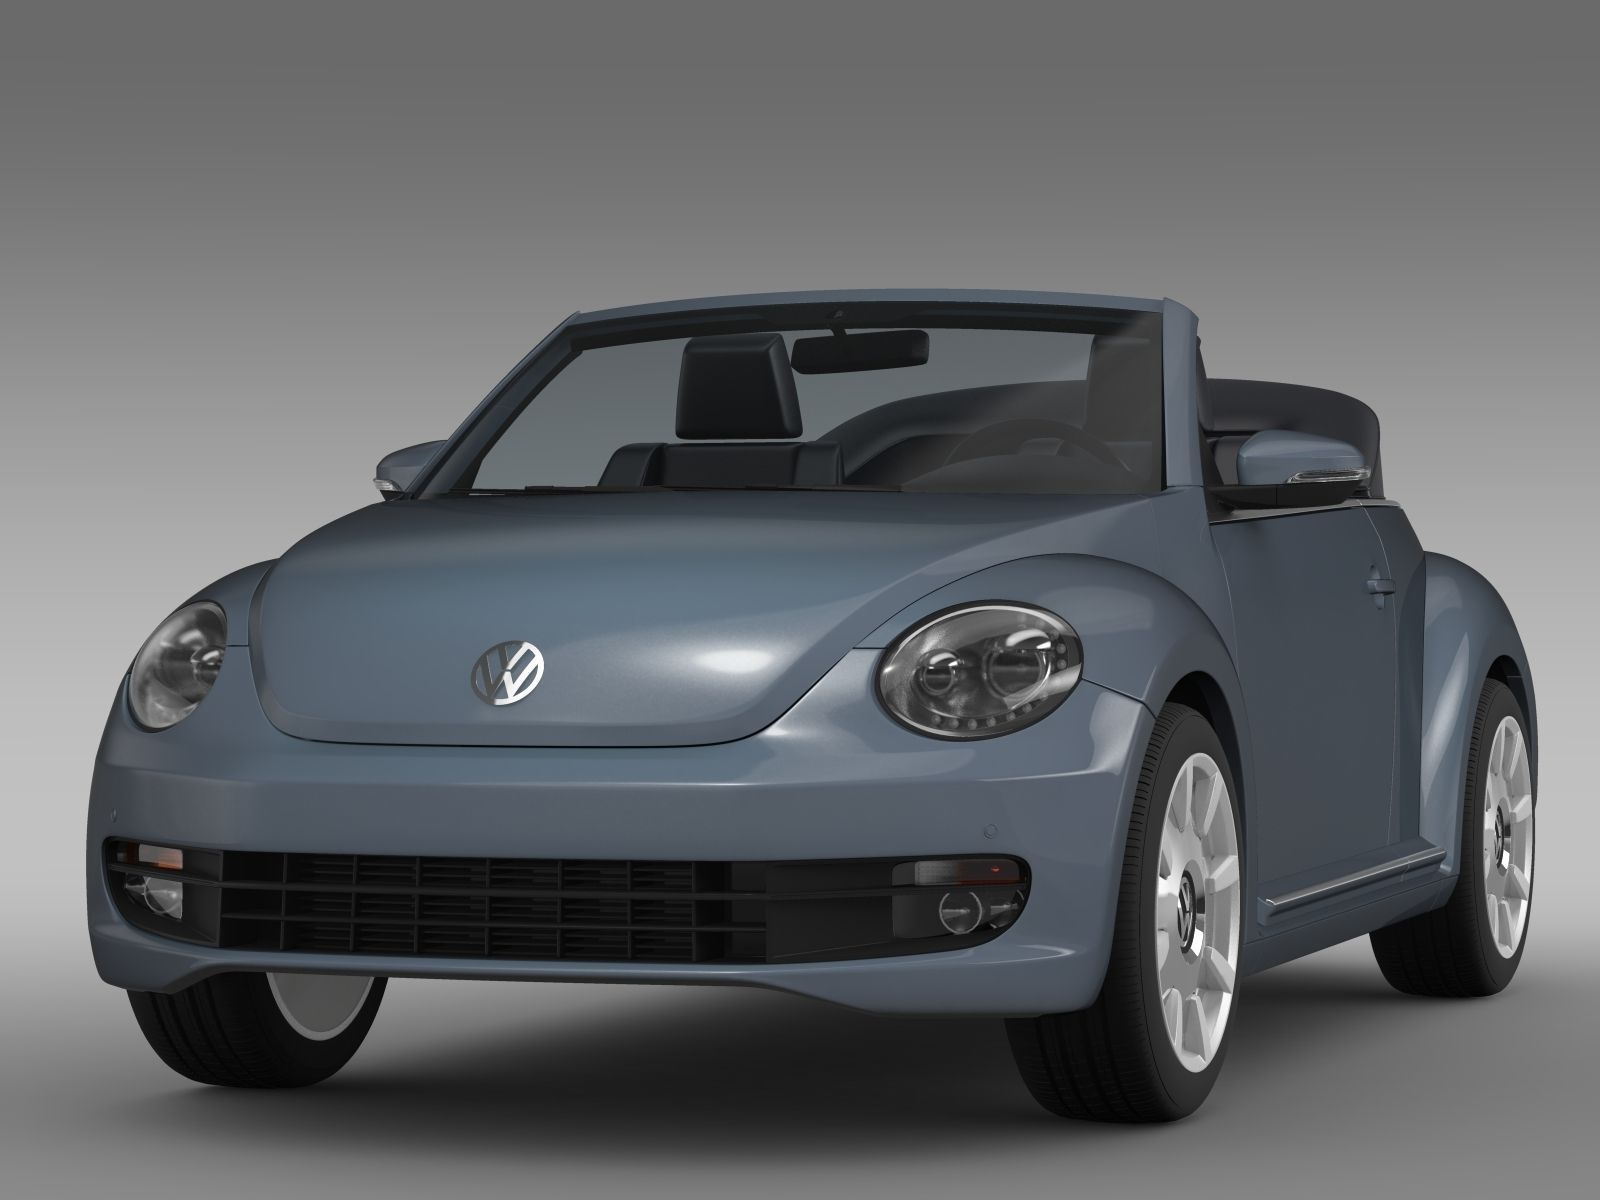 vw beetle cabriolet denim concept 2015 3d model max obj. Black Bedroom Furniture Sets. Home Design Ideas